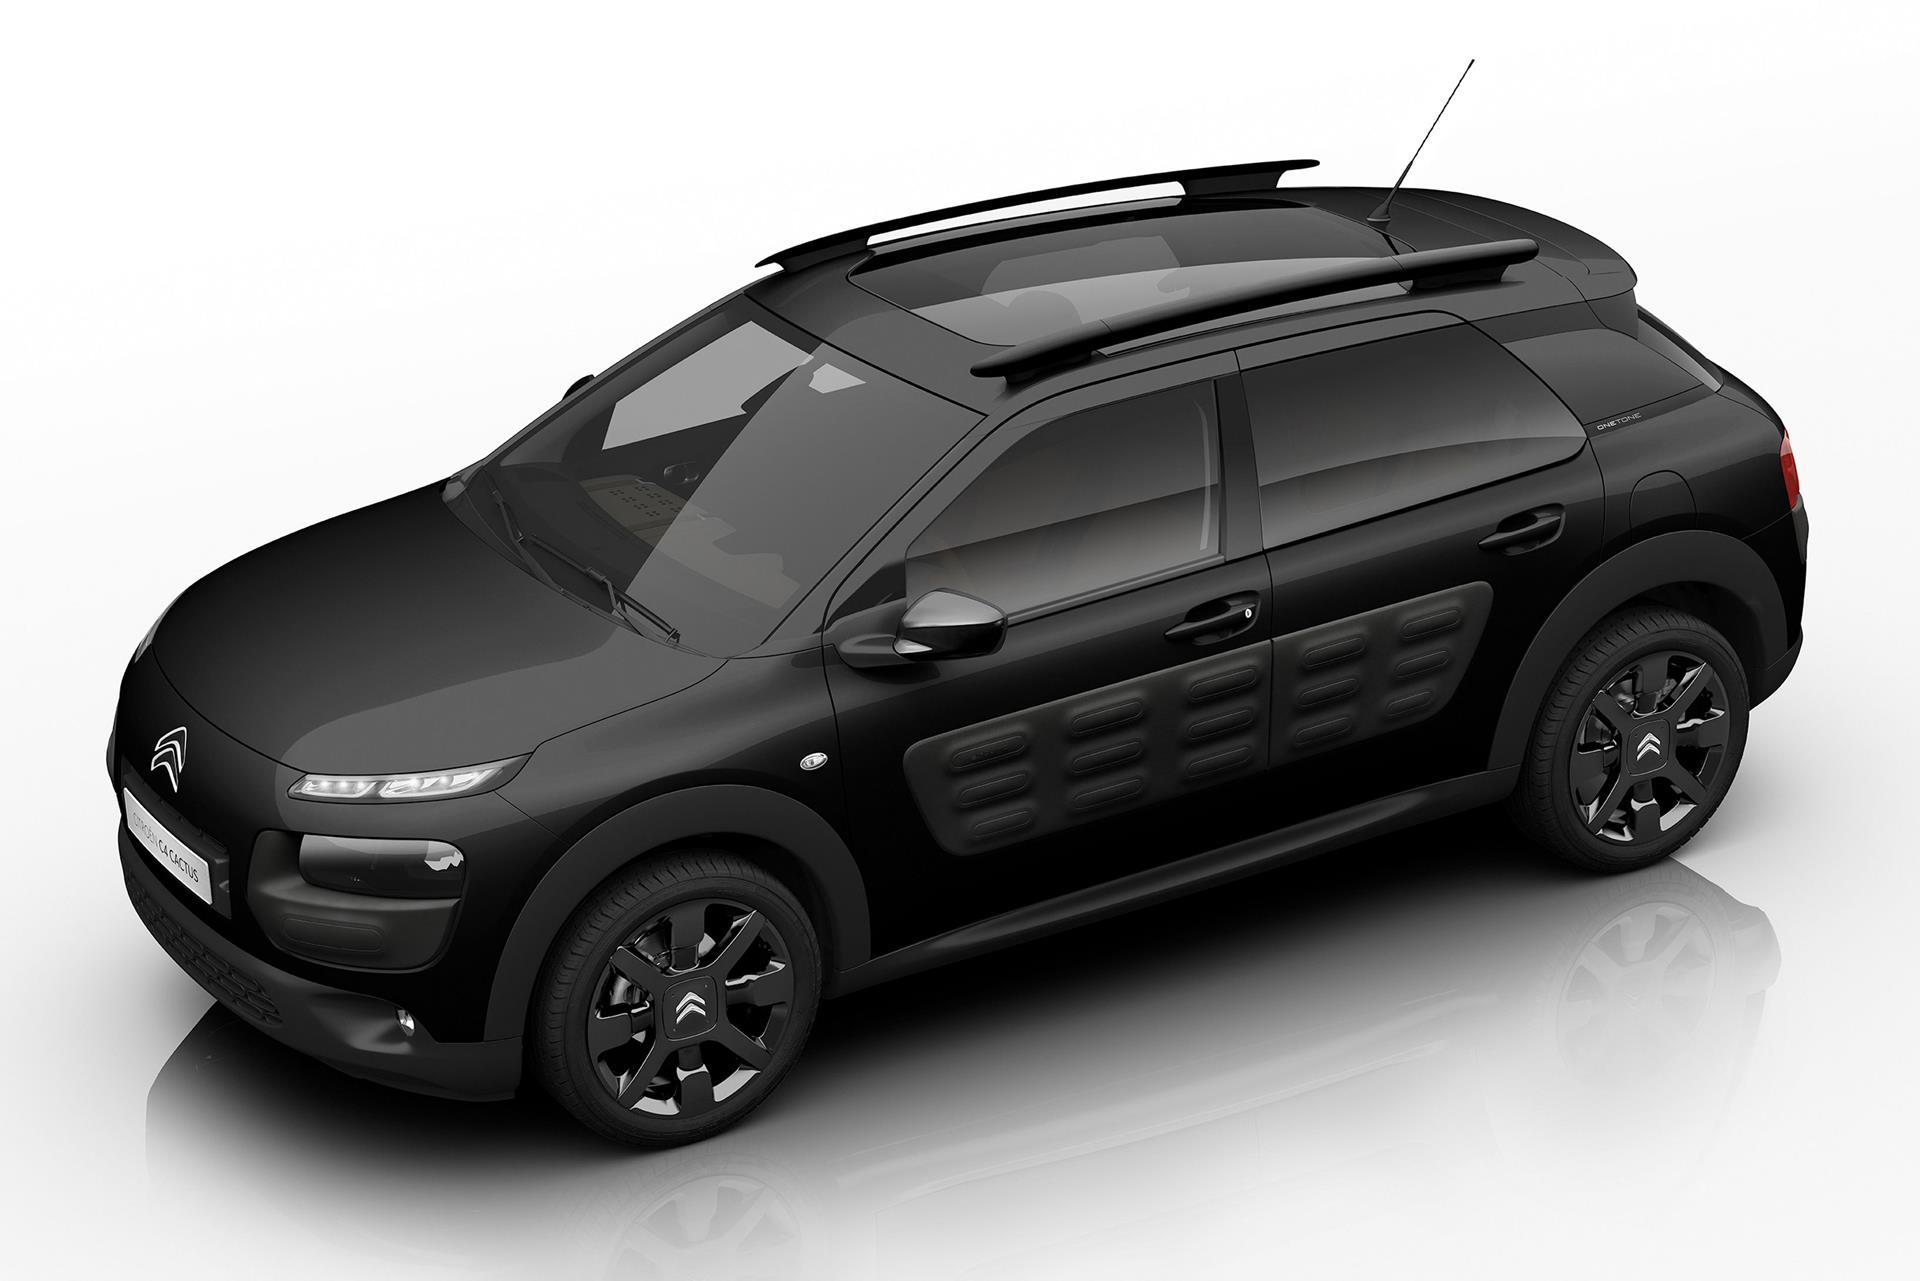 2017 citroen c4 cactus onetone. Black Bedroom Furniture Sets. Home Design Ideas